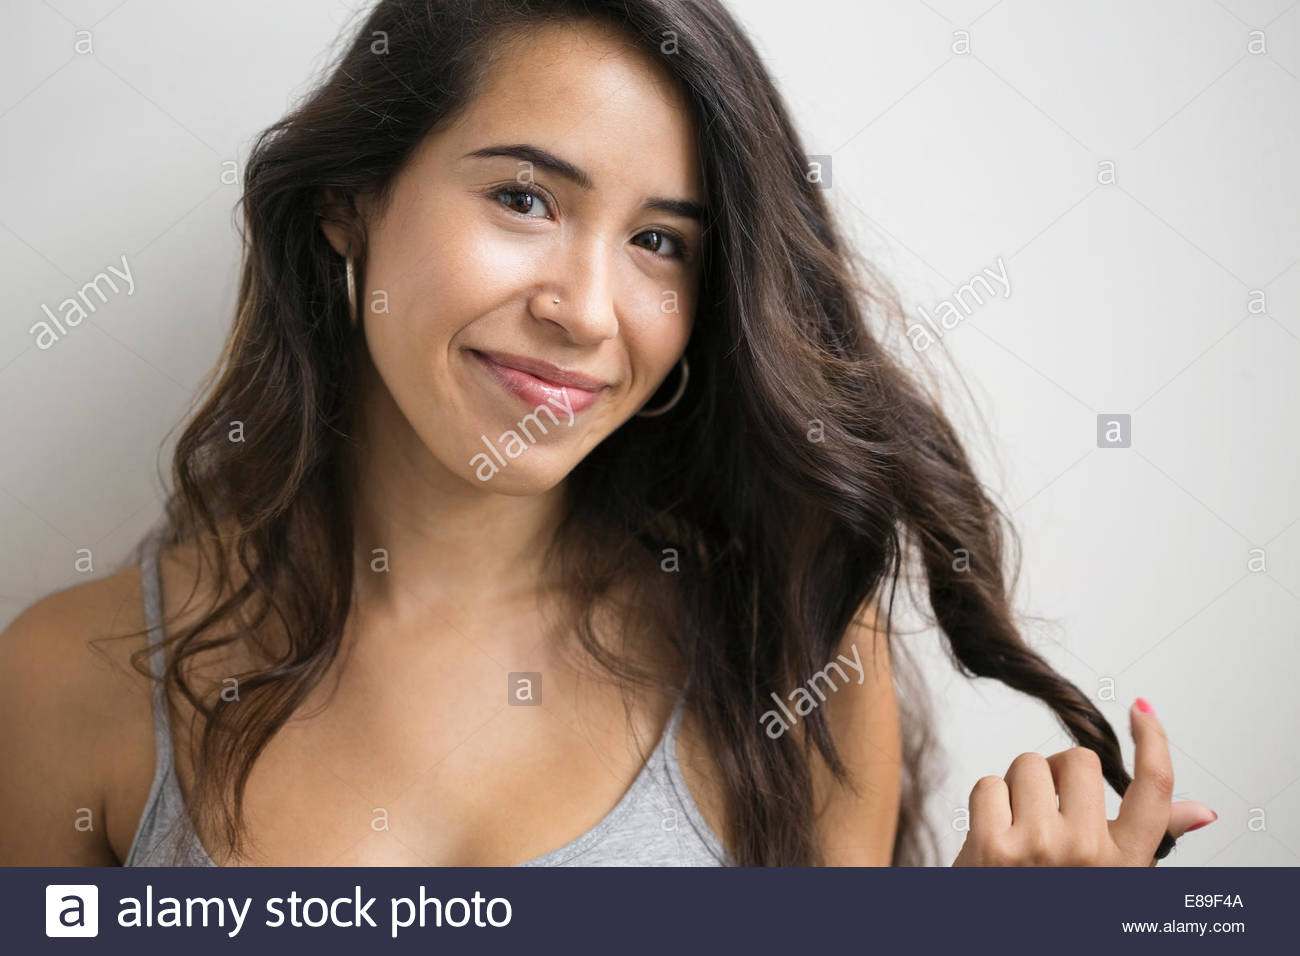 Portrait of smiling young brunette woman twirling hair - Stock Image